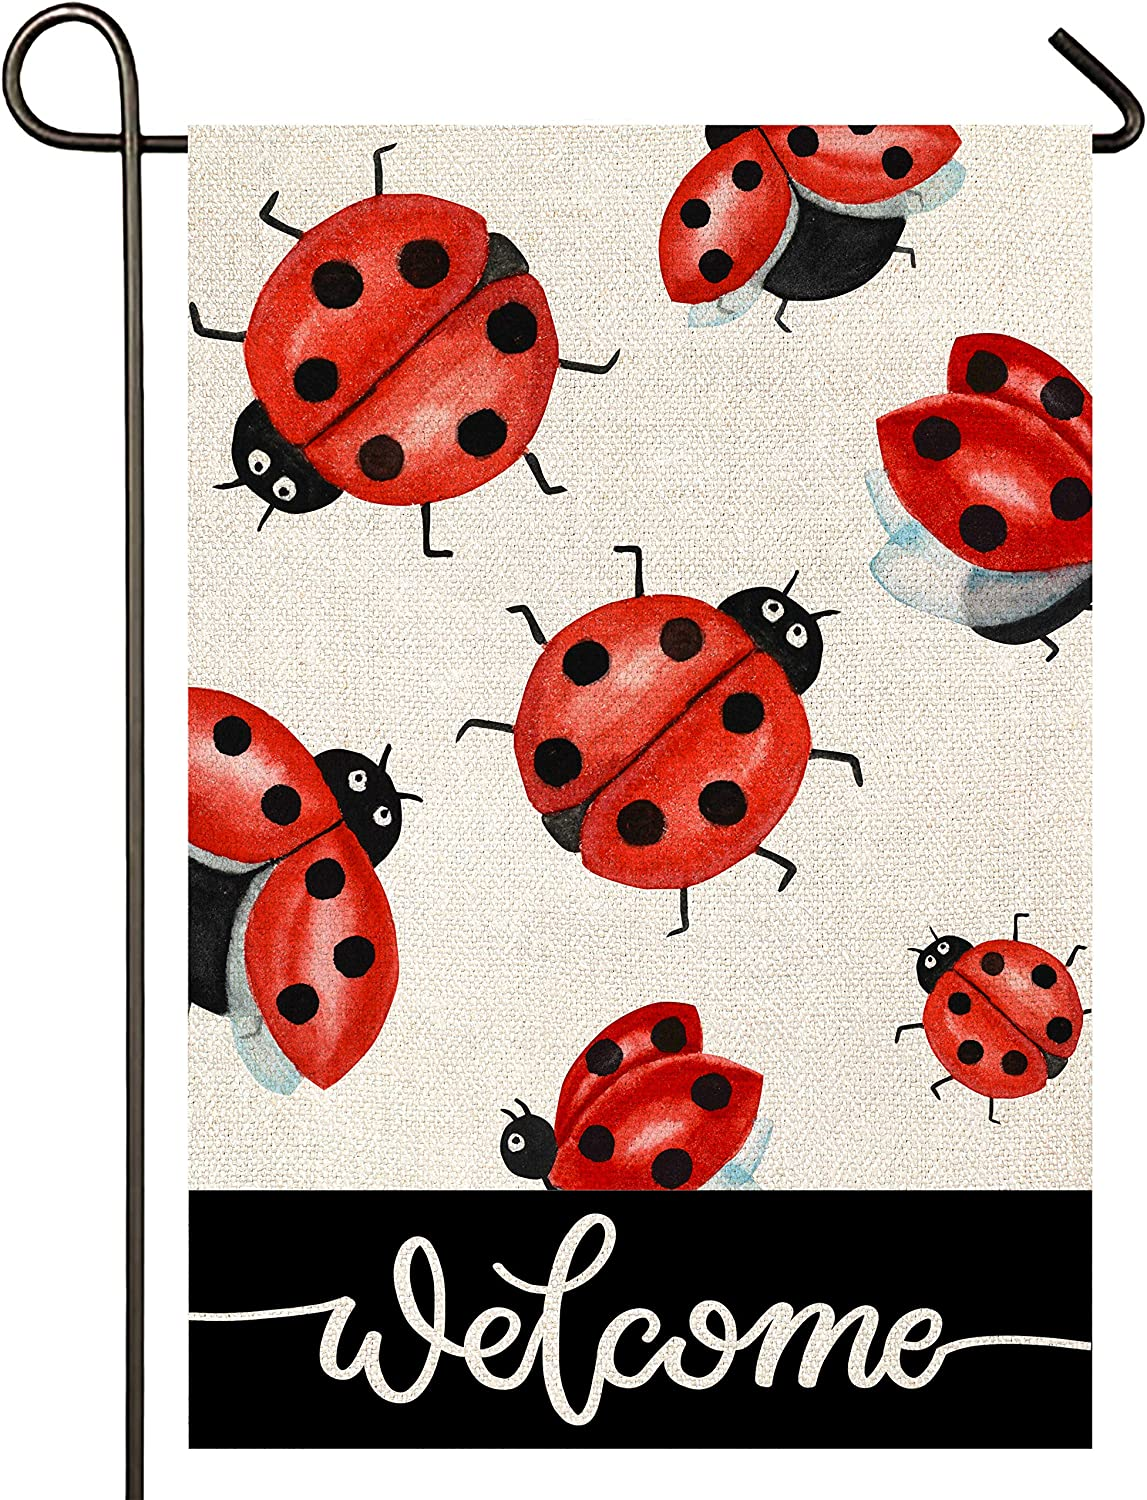 Atenia Ladybug Welcome Garden Burlap Flag, Double Sided Ladybug Welcome Sign Garden Outdoor Yard Flags for Summer Decor (Garden Size - 12.5X18)